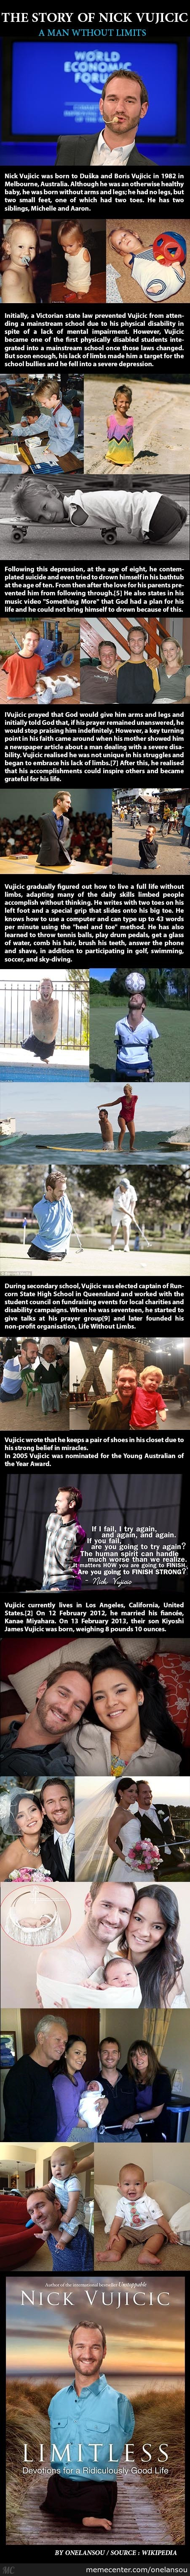 The Story Of Nick Vujicic